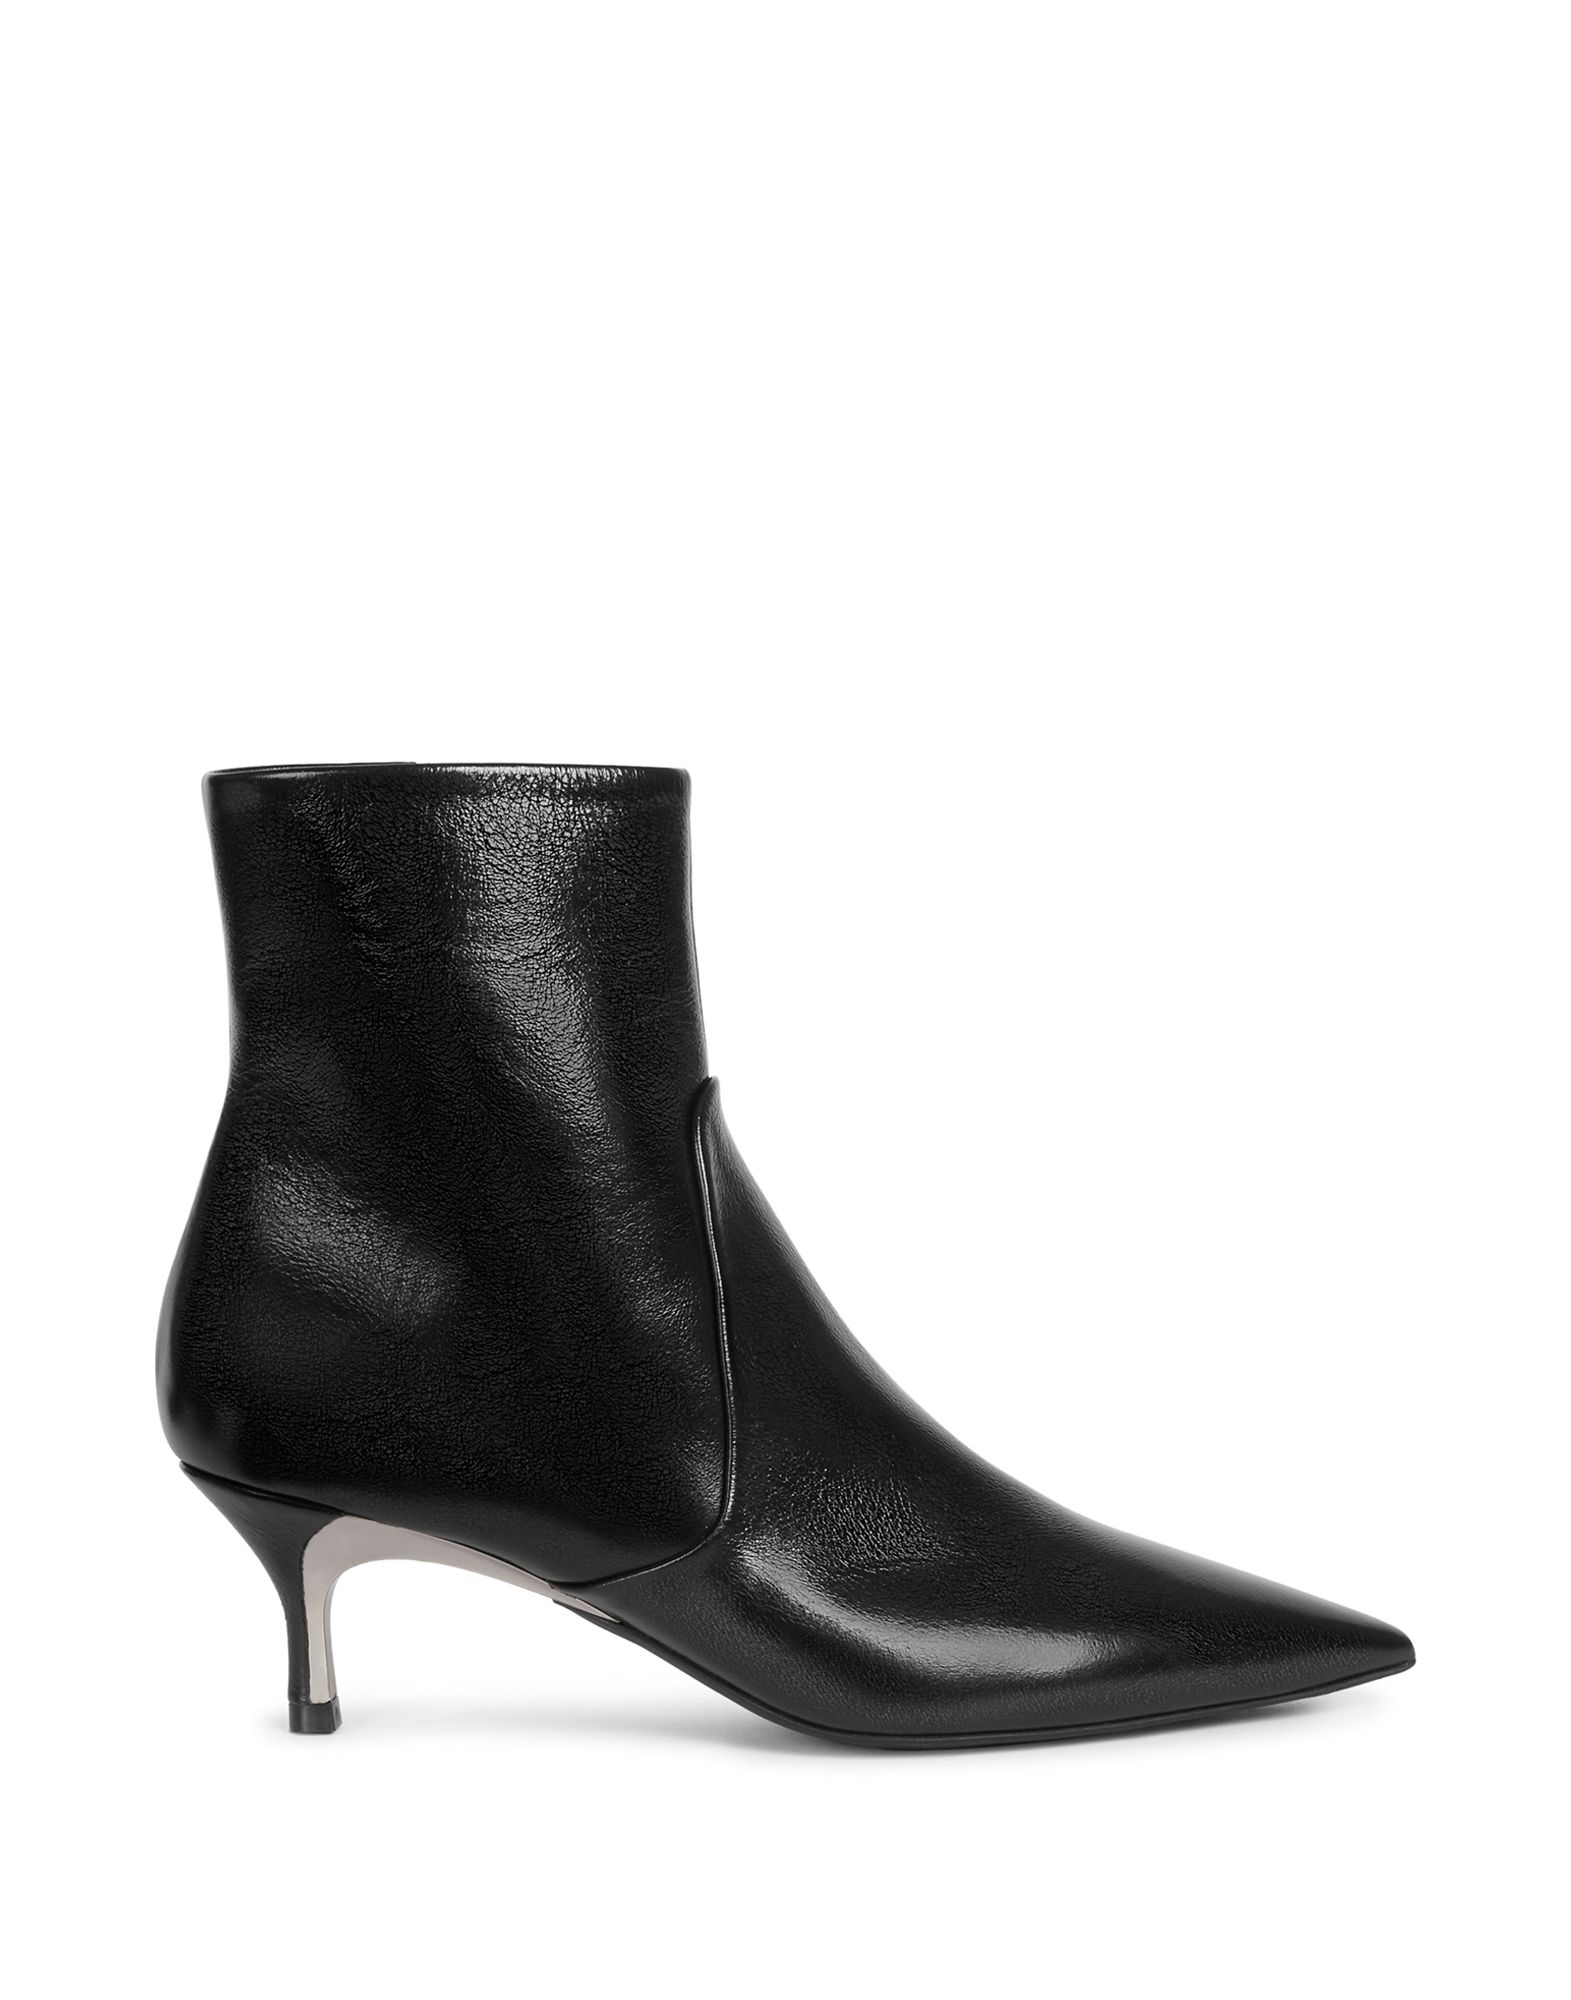 FURLA Ankle boots. varnished effect, solid color, narrow toeline, fully lined, spike heel, zip, rubber sole, no appliqués, contains non-textile parts of animal origin. 100% Soft Leather